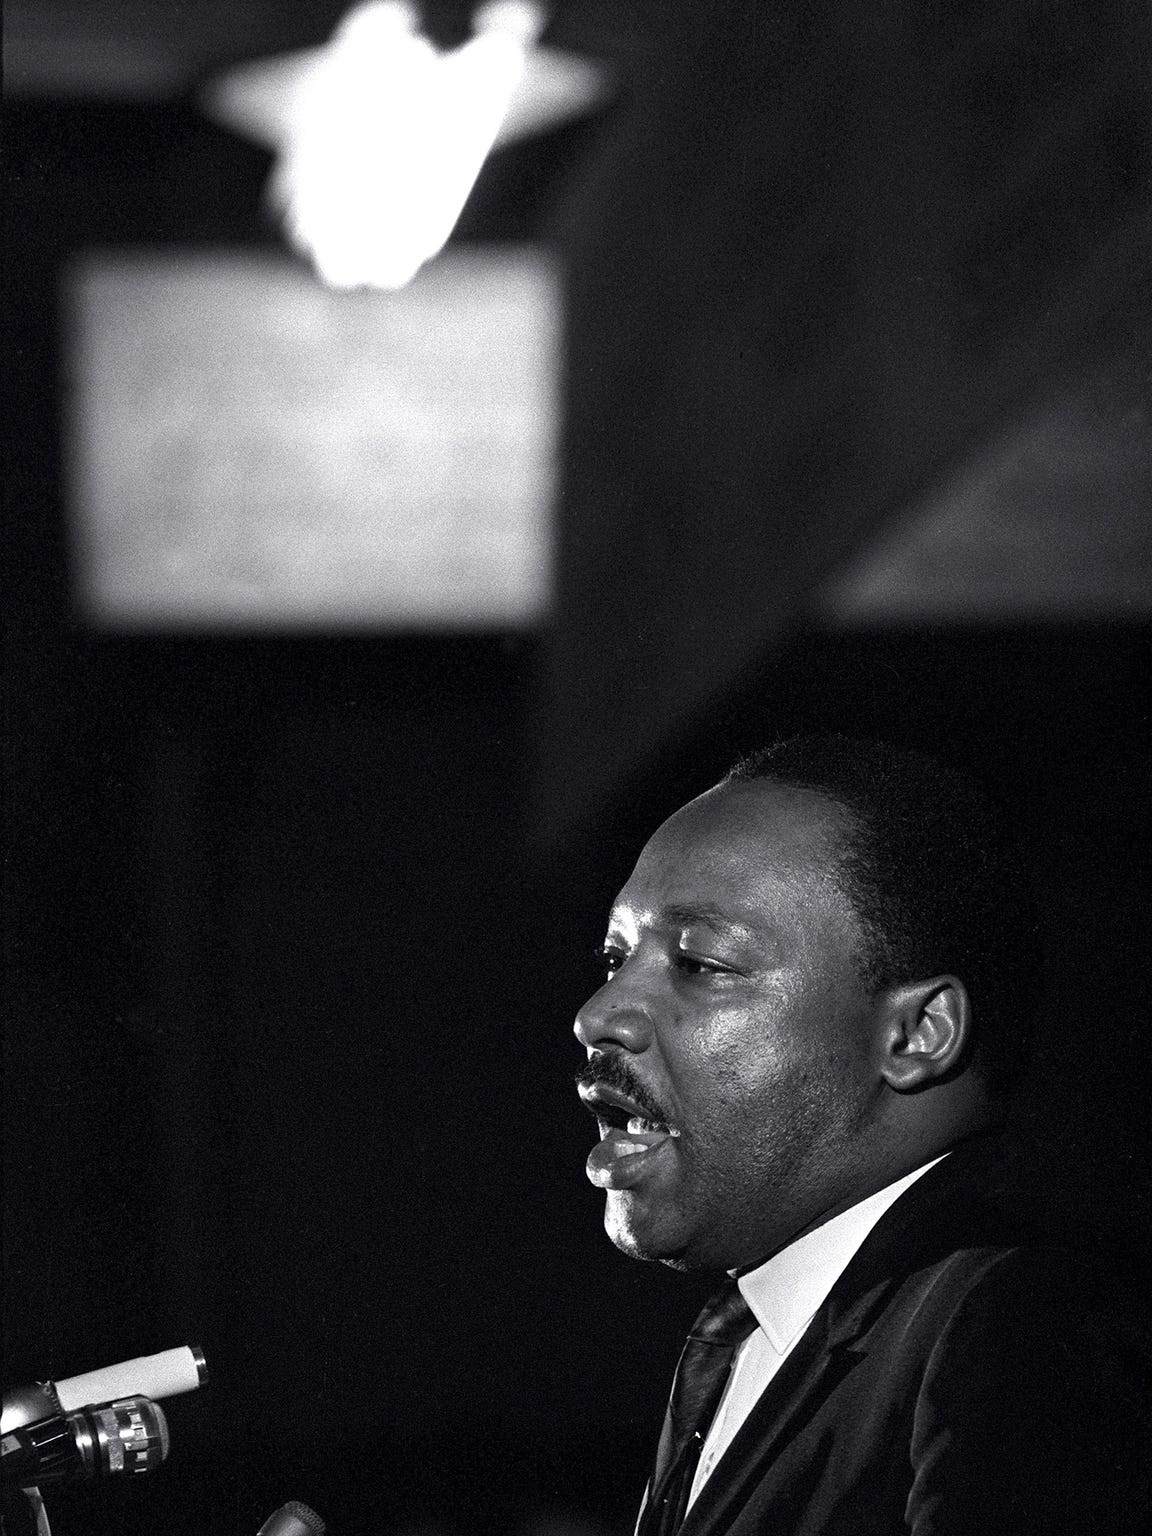 Dr. Martin Luther King Jr. makes his last public appearance